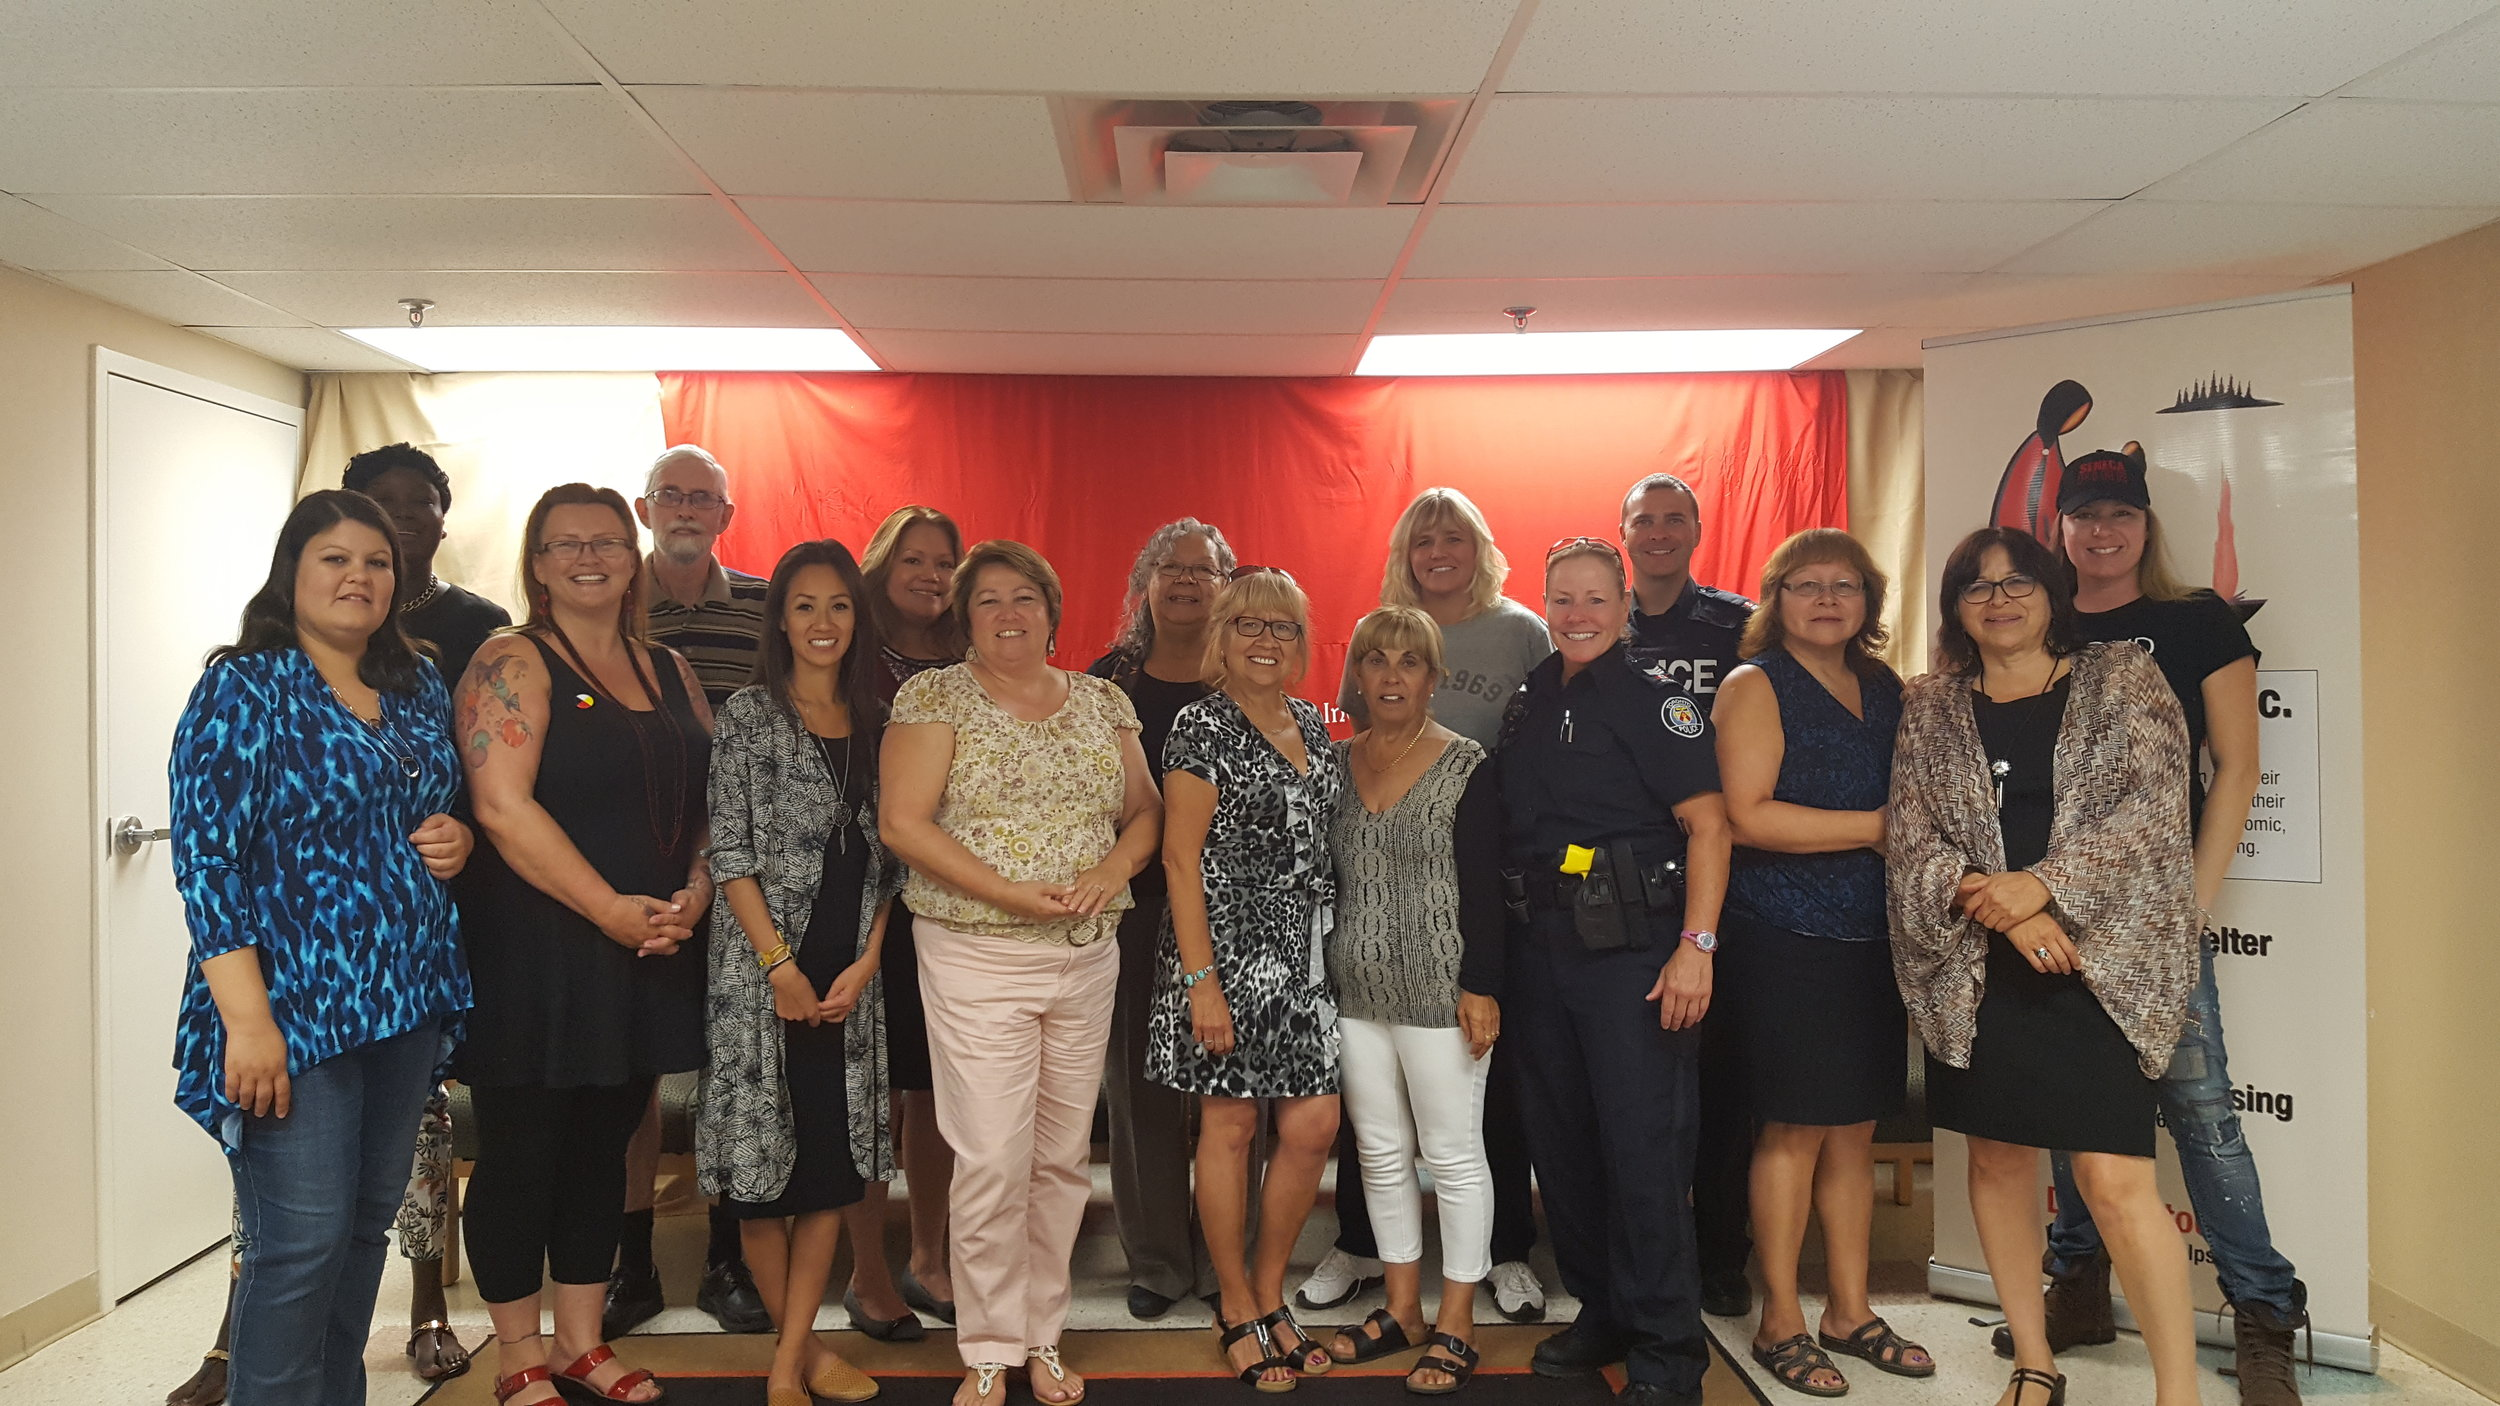 Group Shot: Anduhyaun Staff, Councillor Frances Nunziata, Staff Sargent Hildred, Constable Jason Rennie, Vicky Dawson, Simon Chamberlain, and friends from Seneca College.